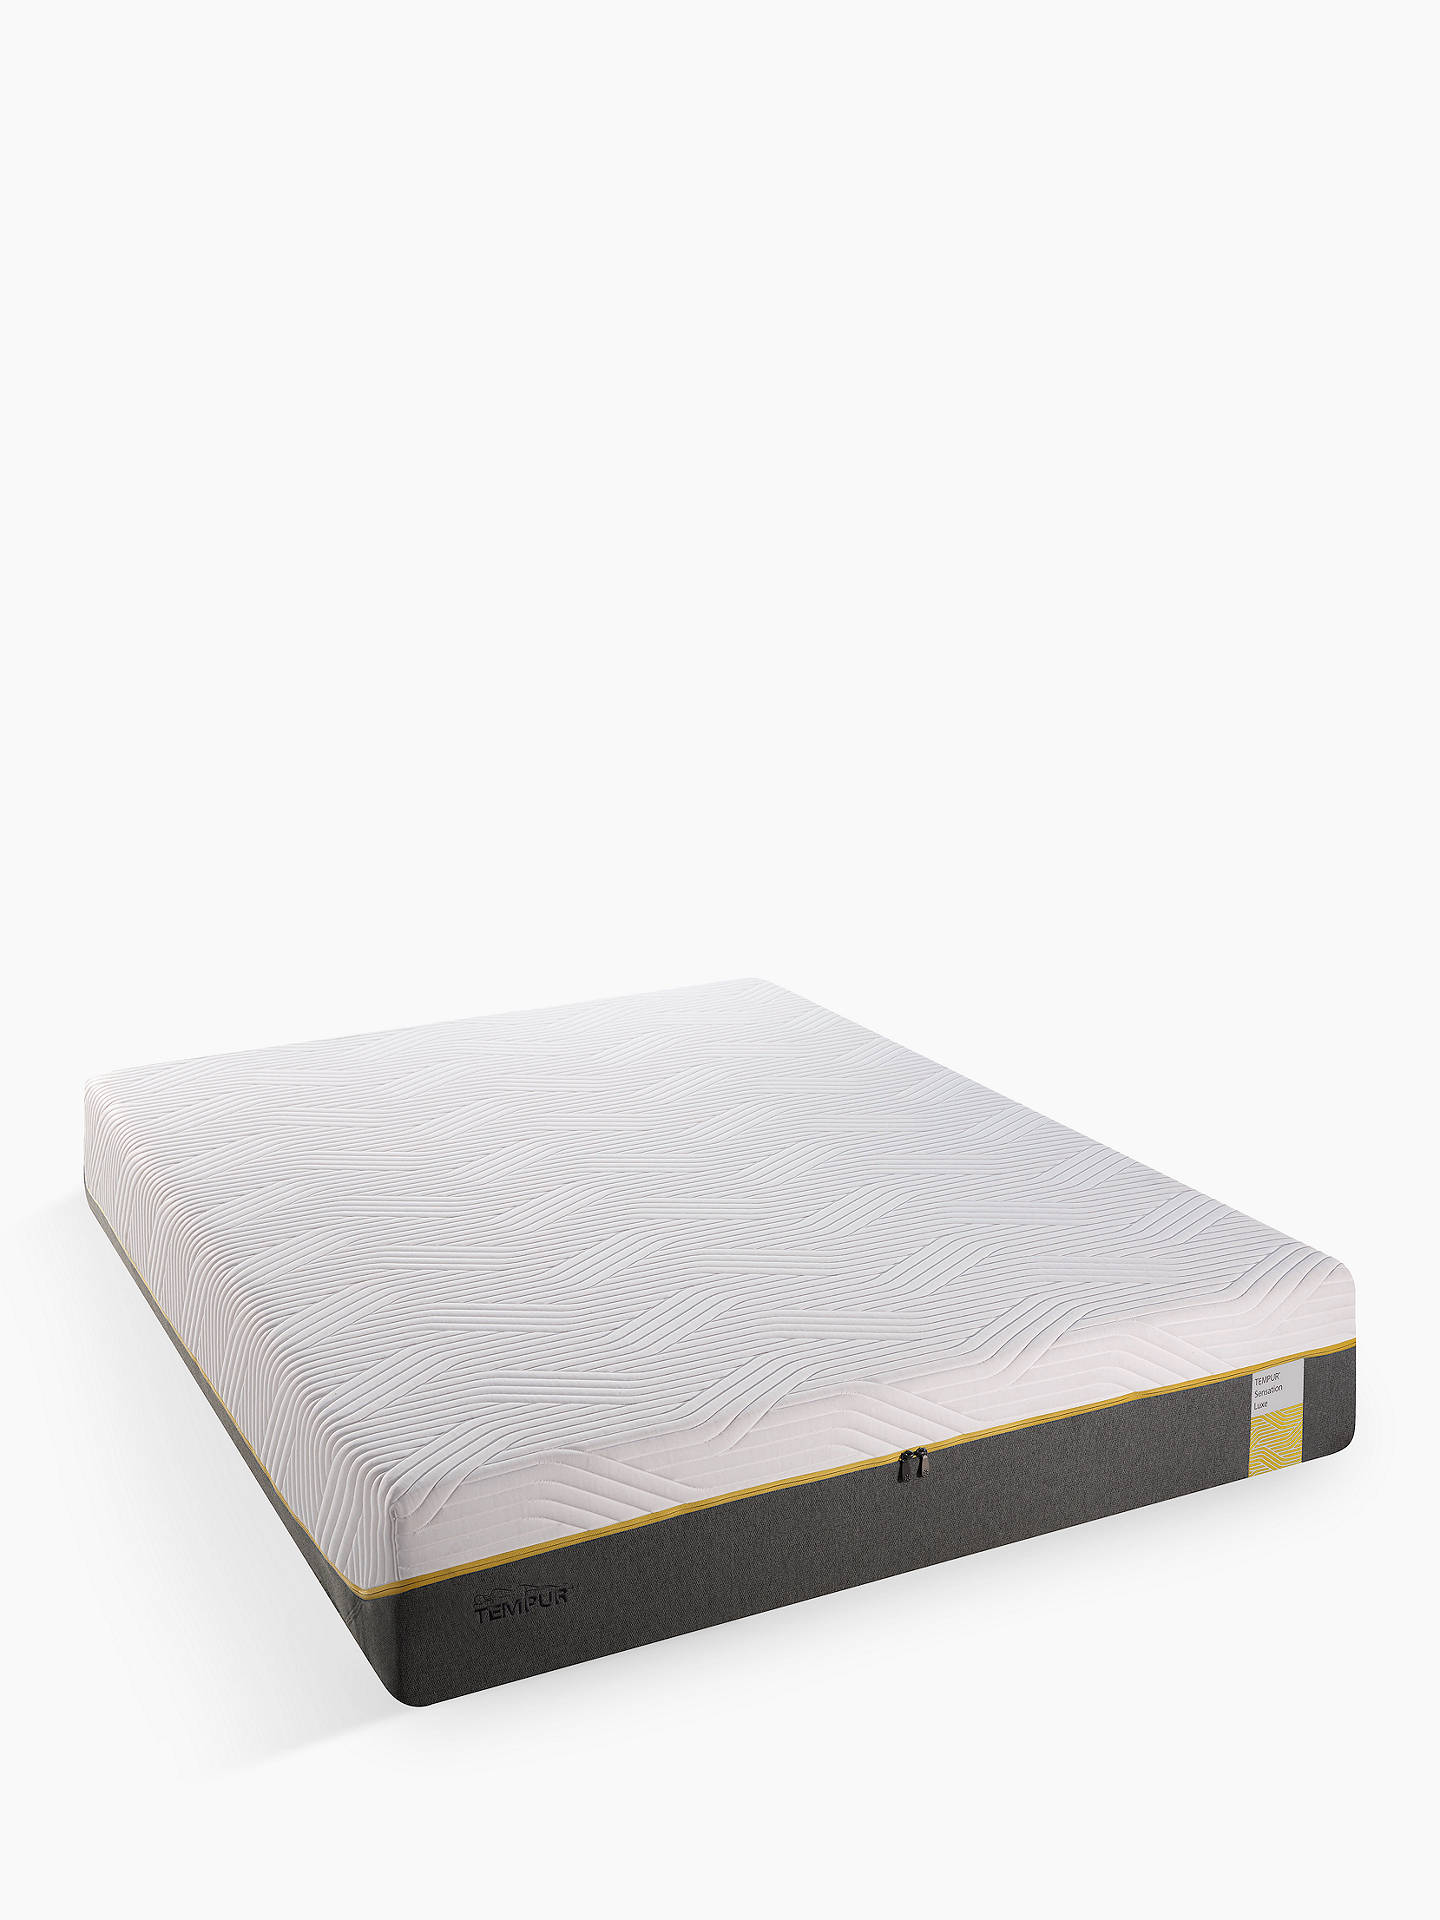 BuyTempur Sensation Luxe 30 Memory Foam Mattress, Medium, Double Online at johnlewis.com